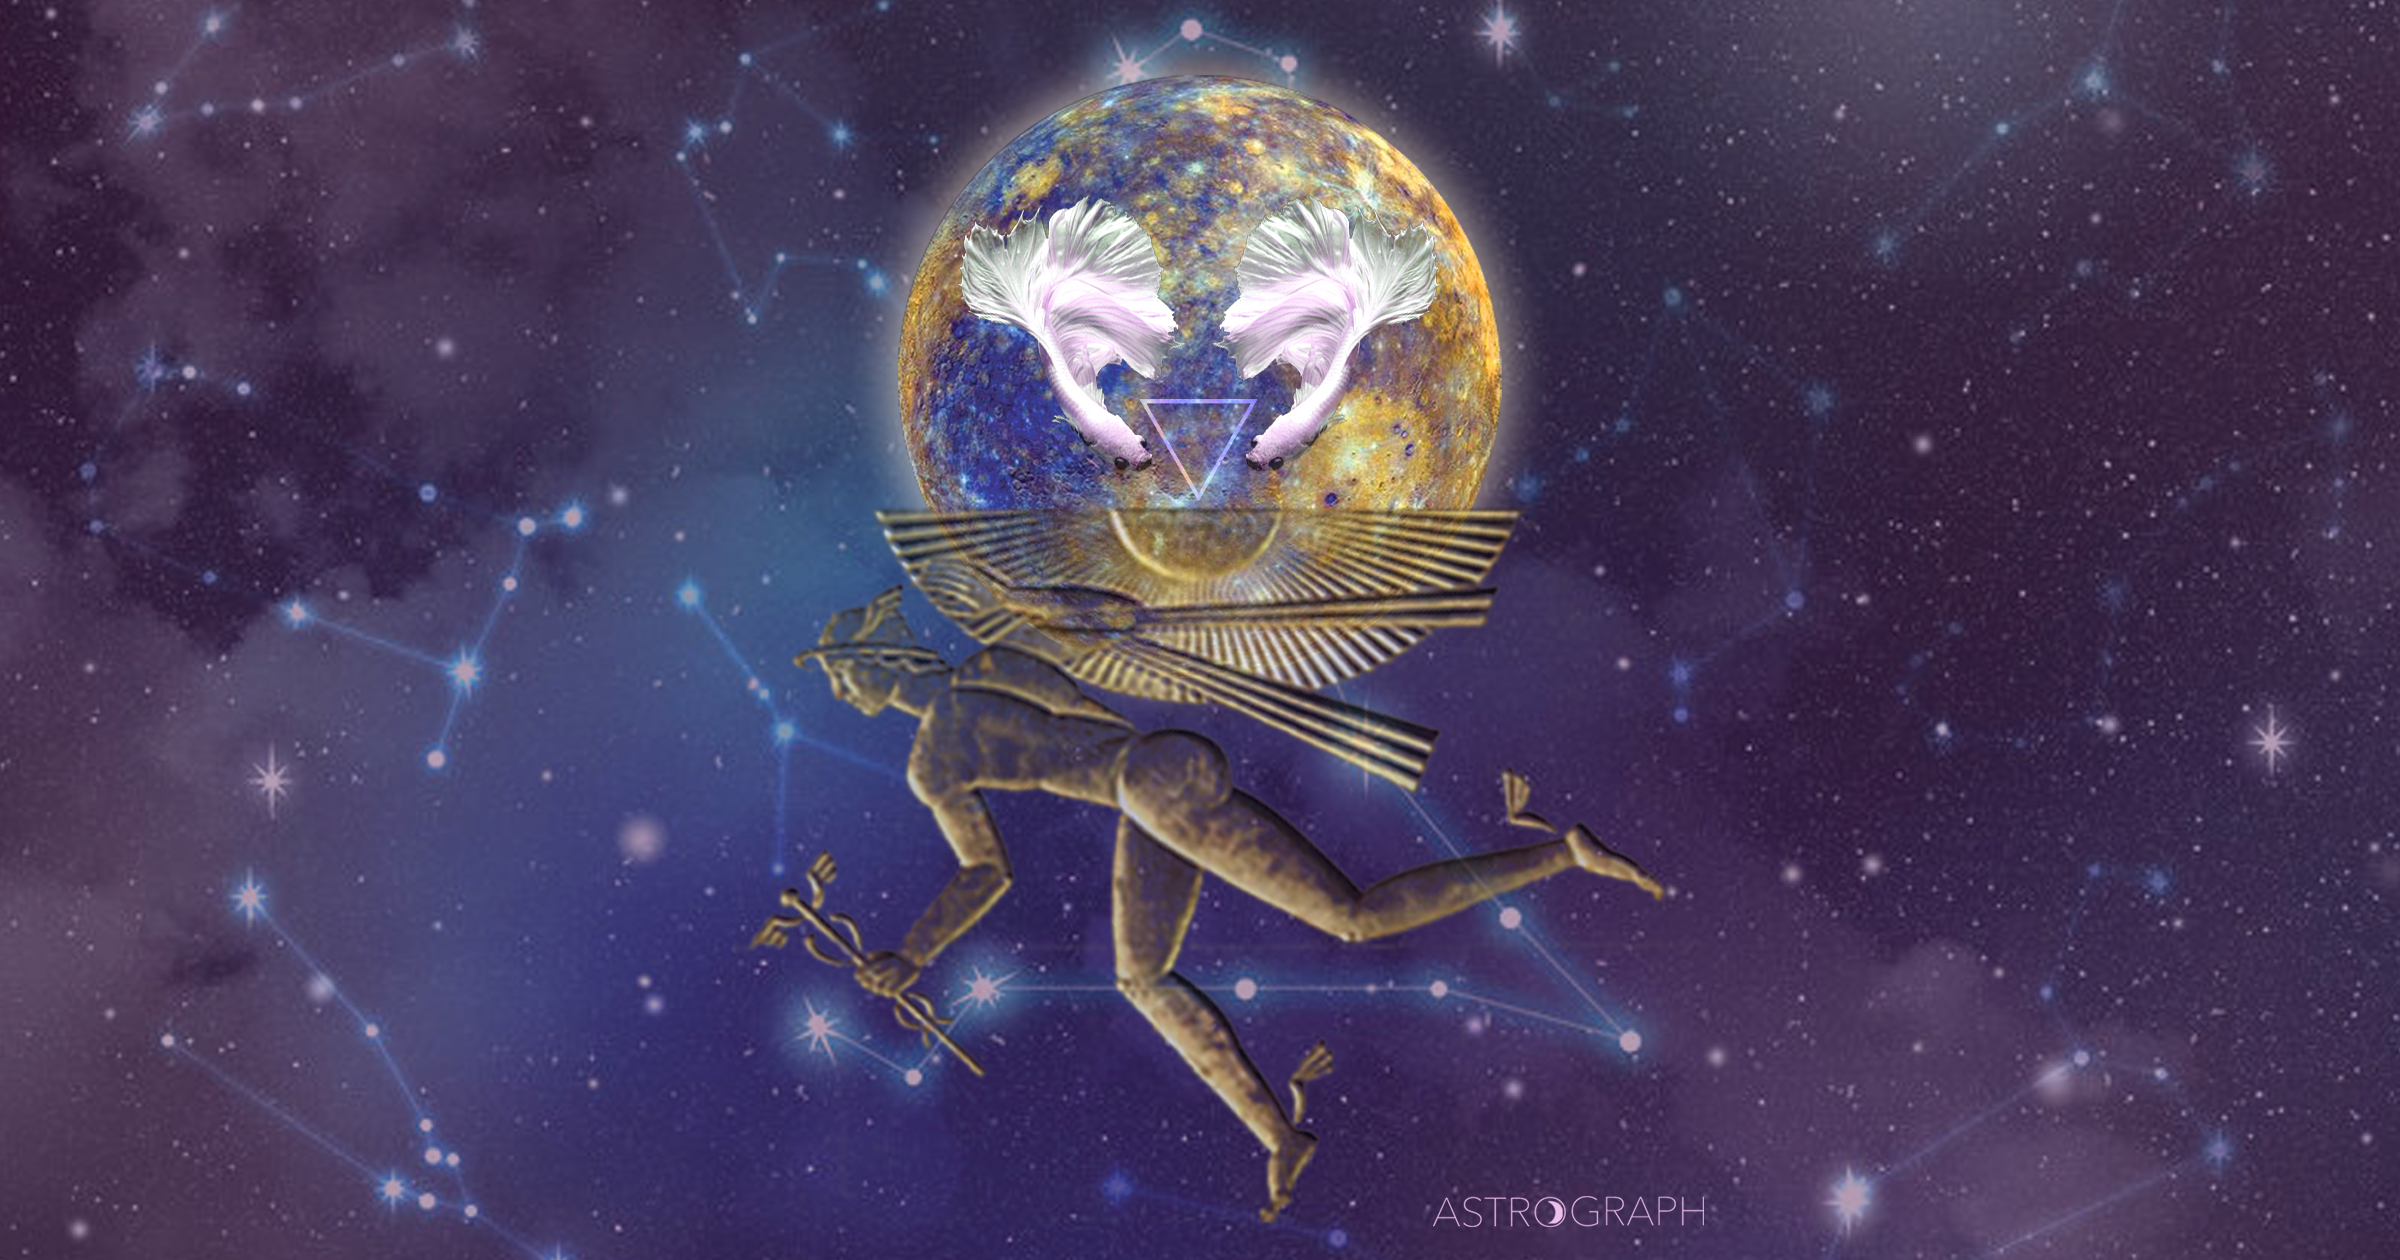 ASTROGRAPH - Mercury Retrograde March 2019: Reflections of Transcendence